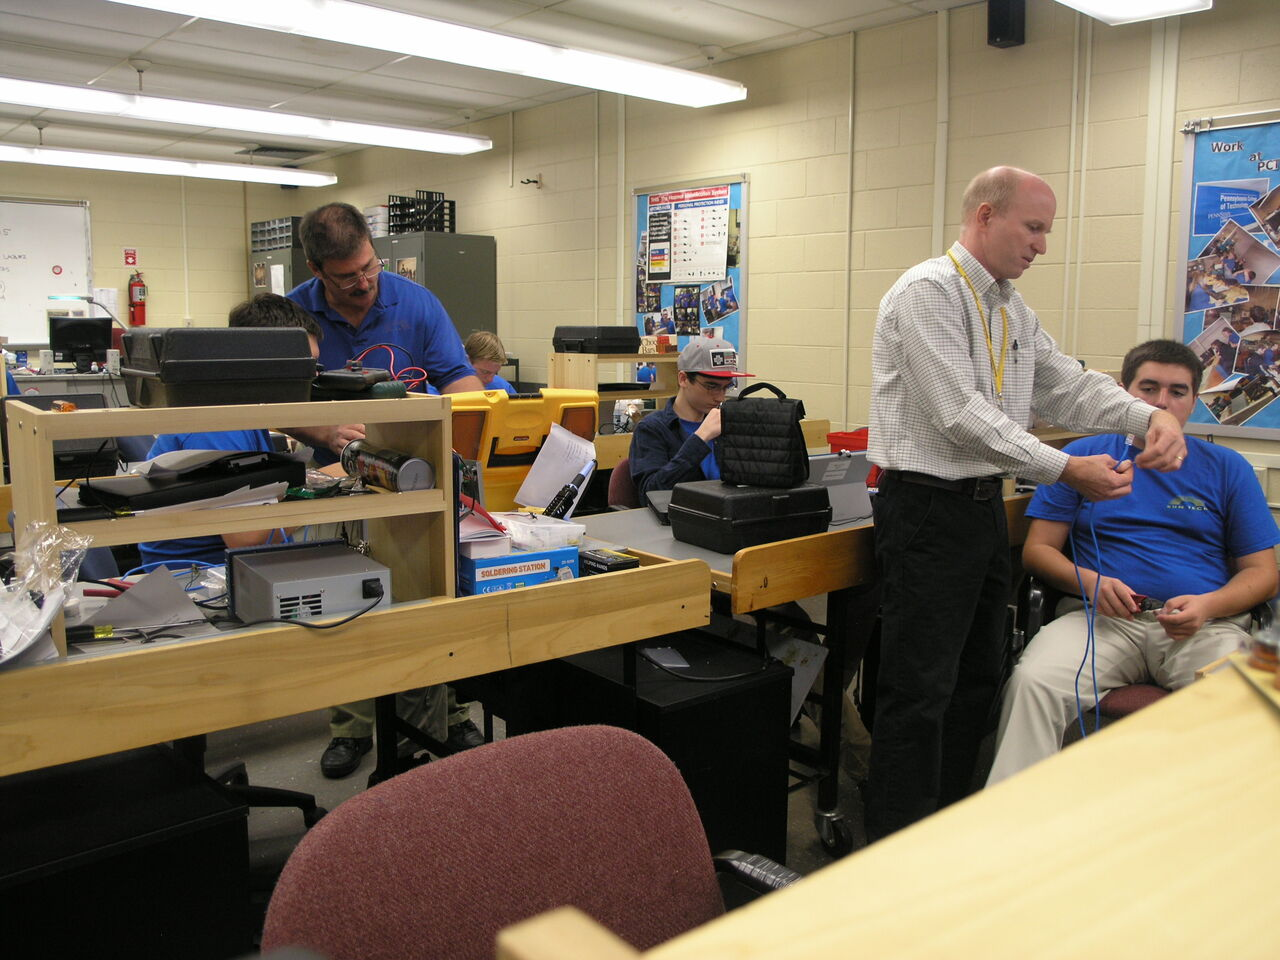 SUN Tech's Len Schwartz and Penn College's Jeff Rankenin Teach-Teach in Electronics